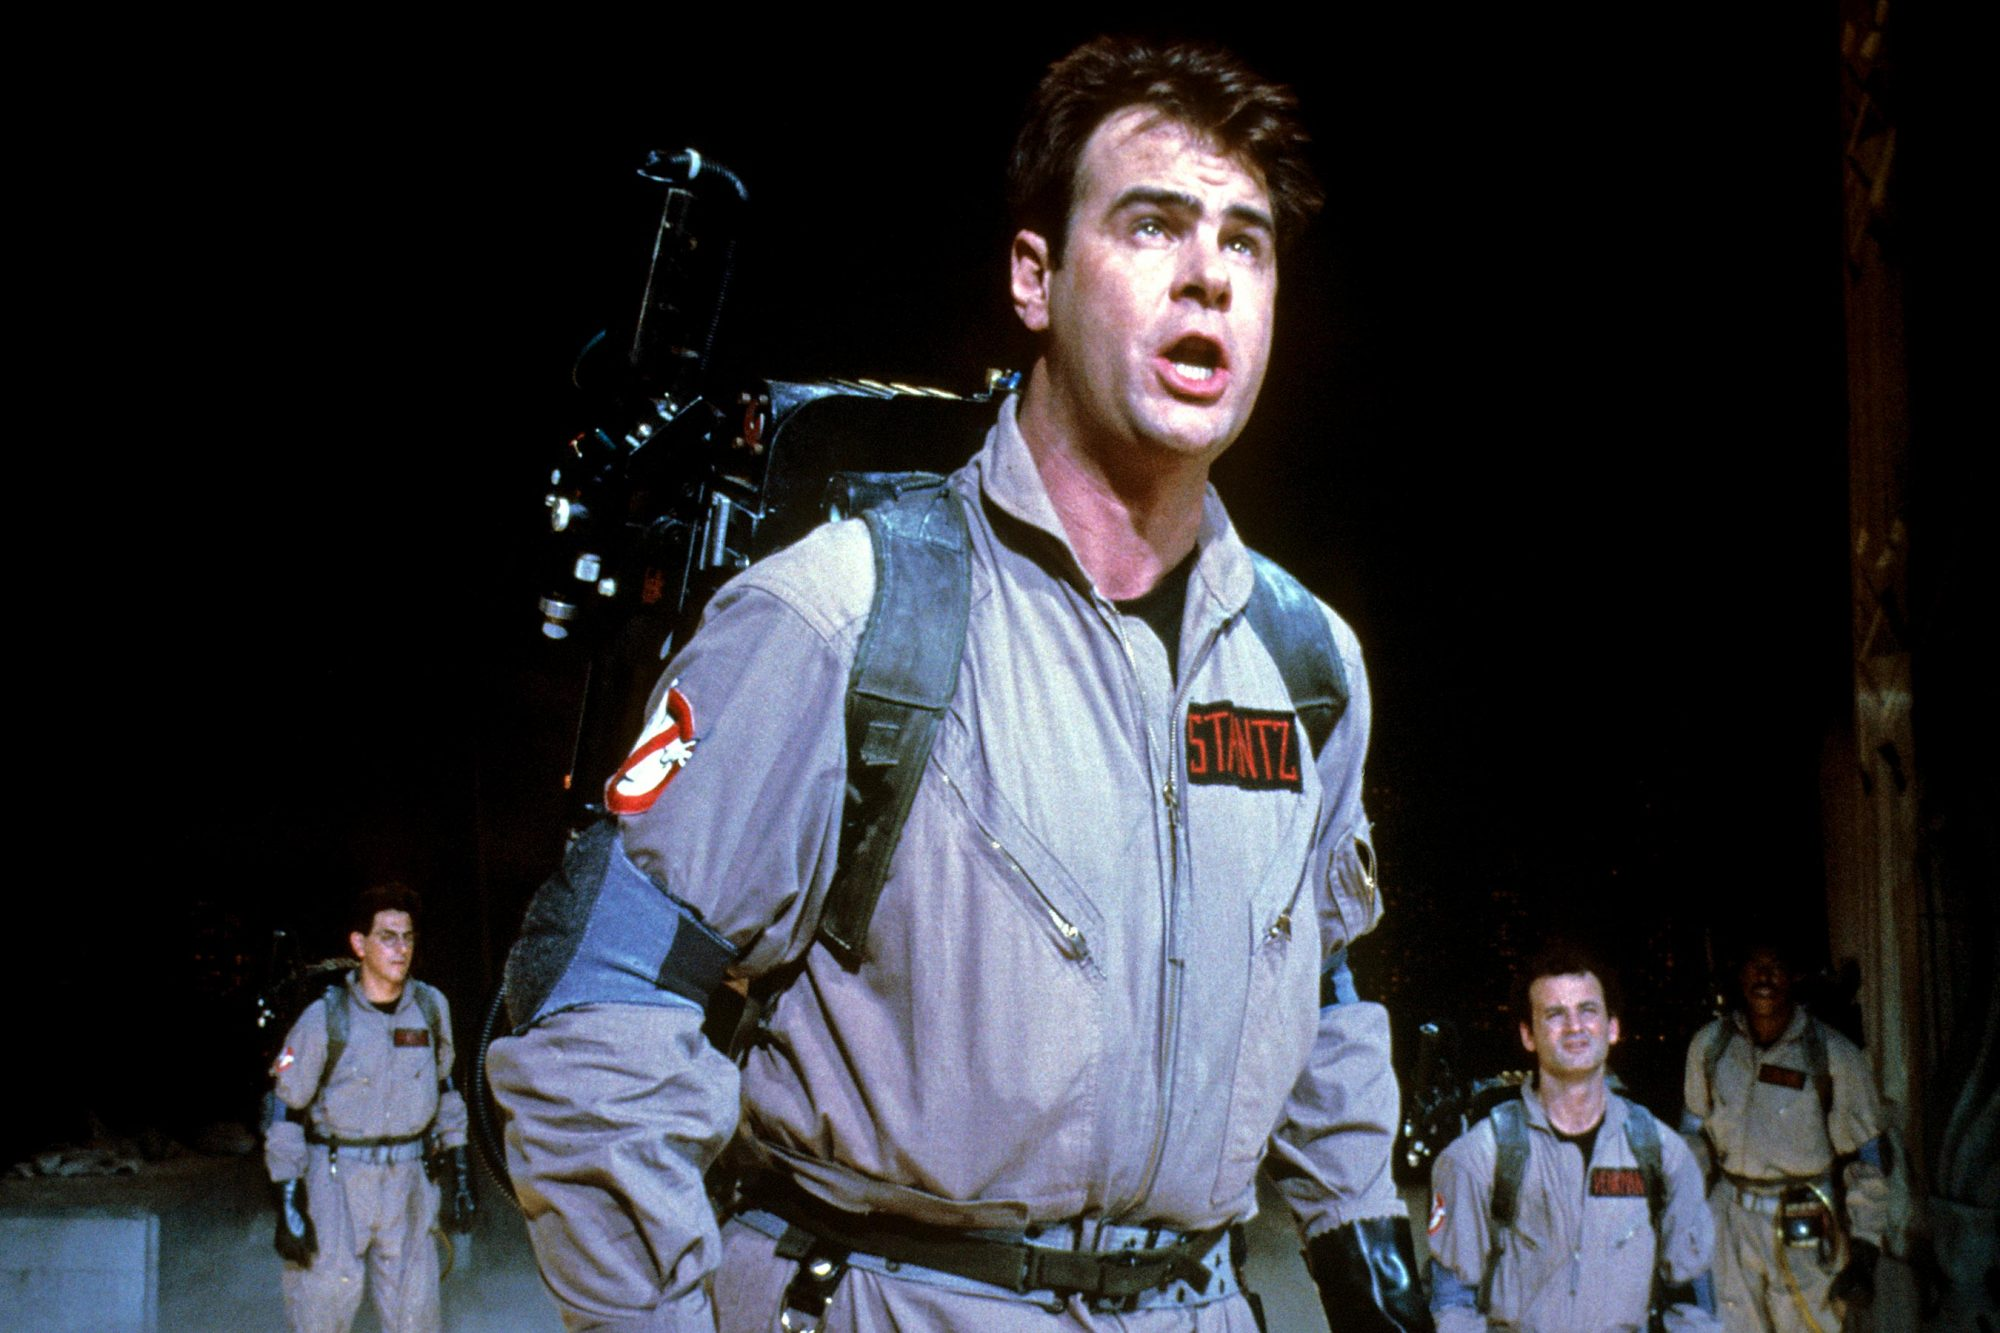 GHOSTBUSTERS, Harold Ramis, Dan Aykroyd, Bill Murray, 1984.